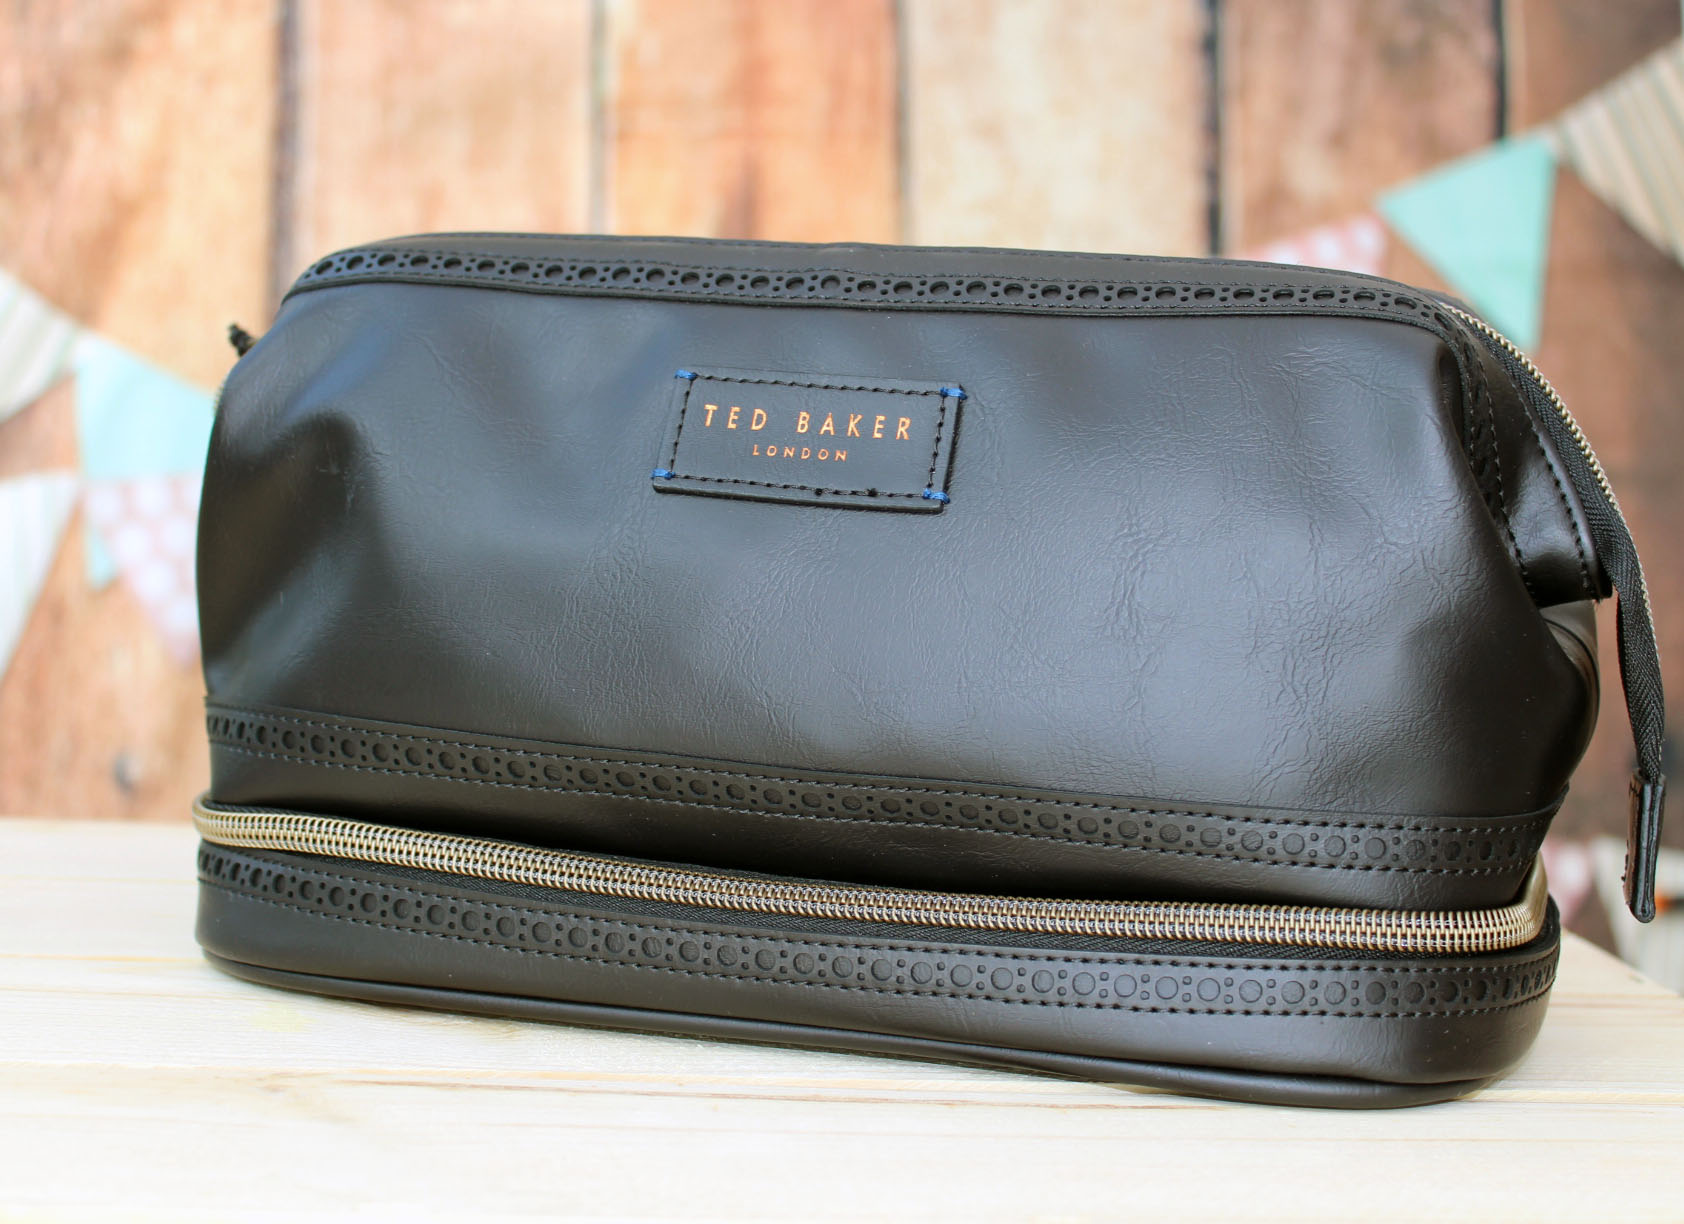 Amara, Father's Day, father's Day gifts, ted Baker wash bag, dad blog uk, dadbloguk, school run dad